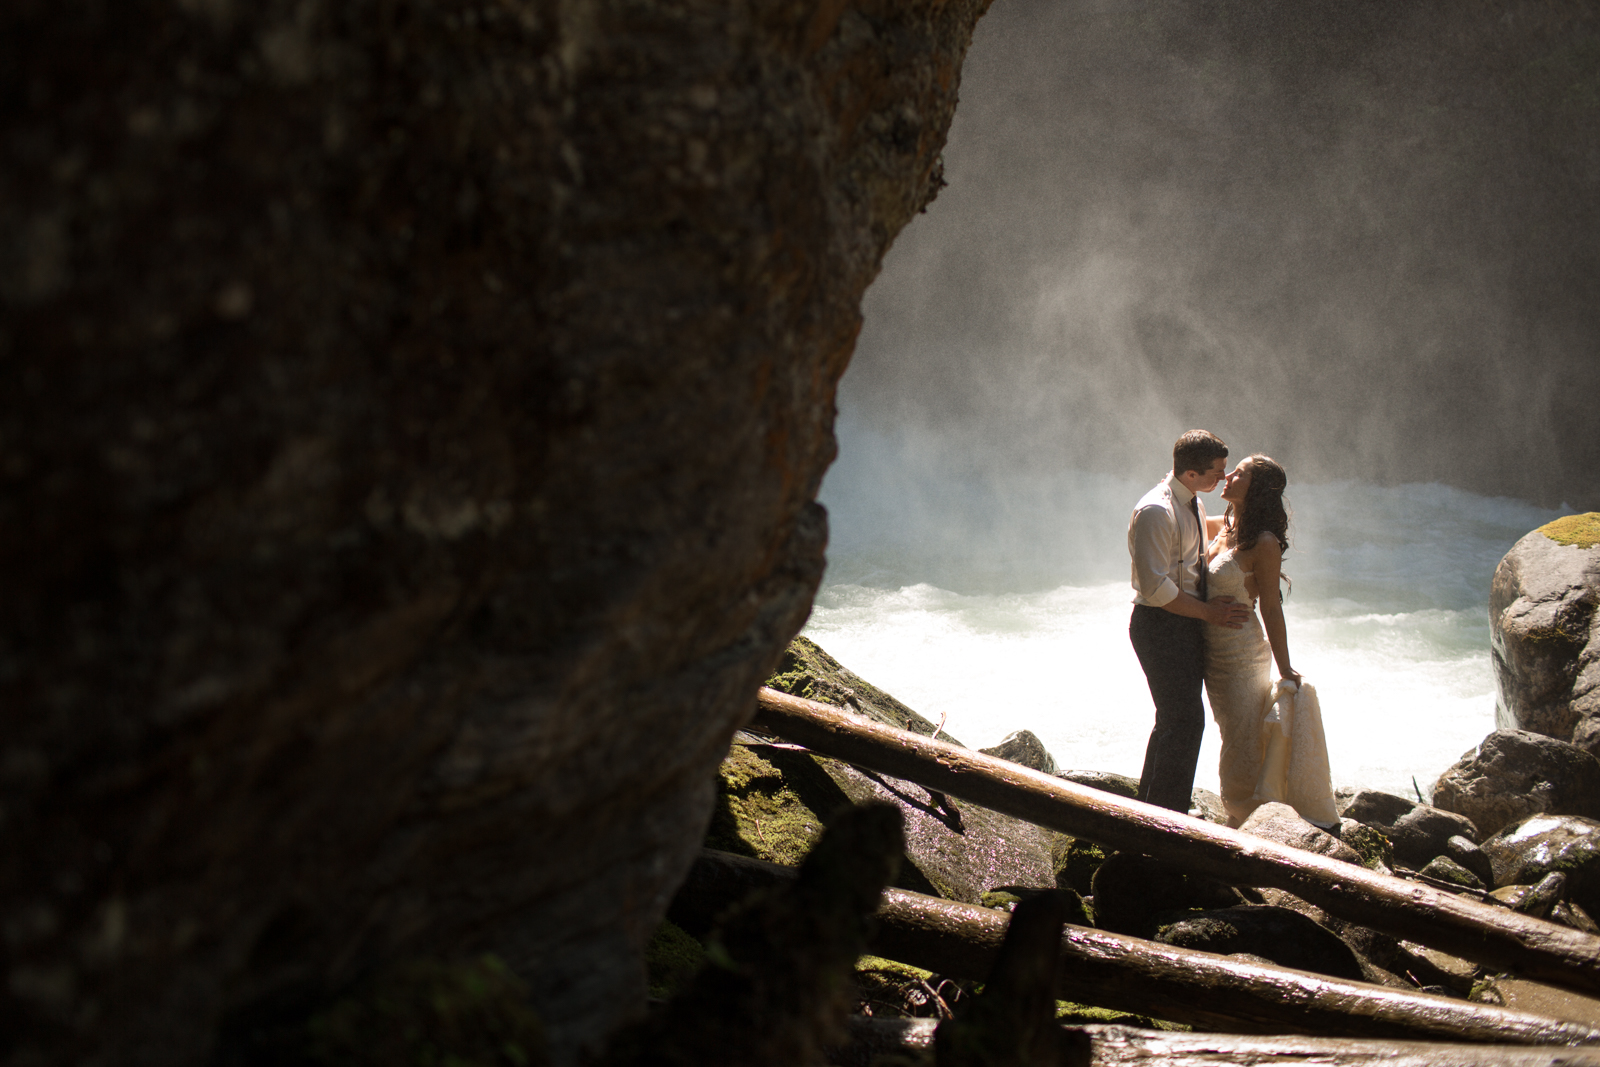 57Andrew_Pavlidis_Photography_Jess_and_Tristan_Revelstoke_Elopement_Calgary_Wedding_Photographer-832622